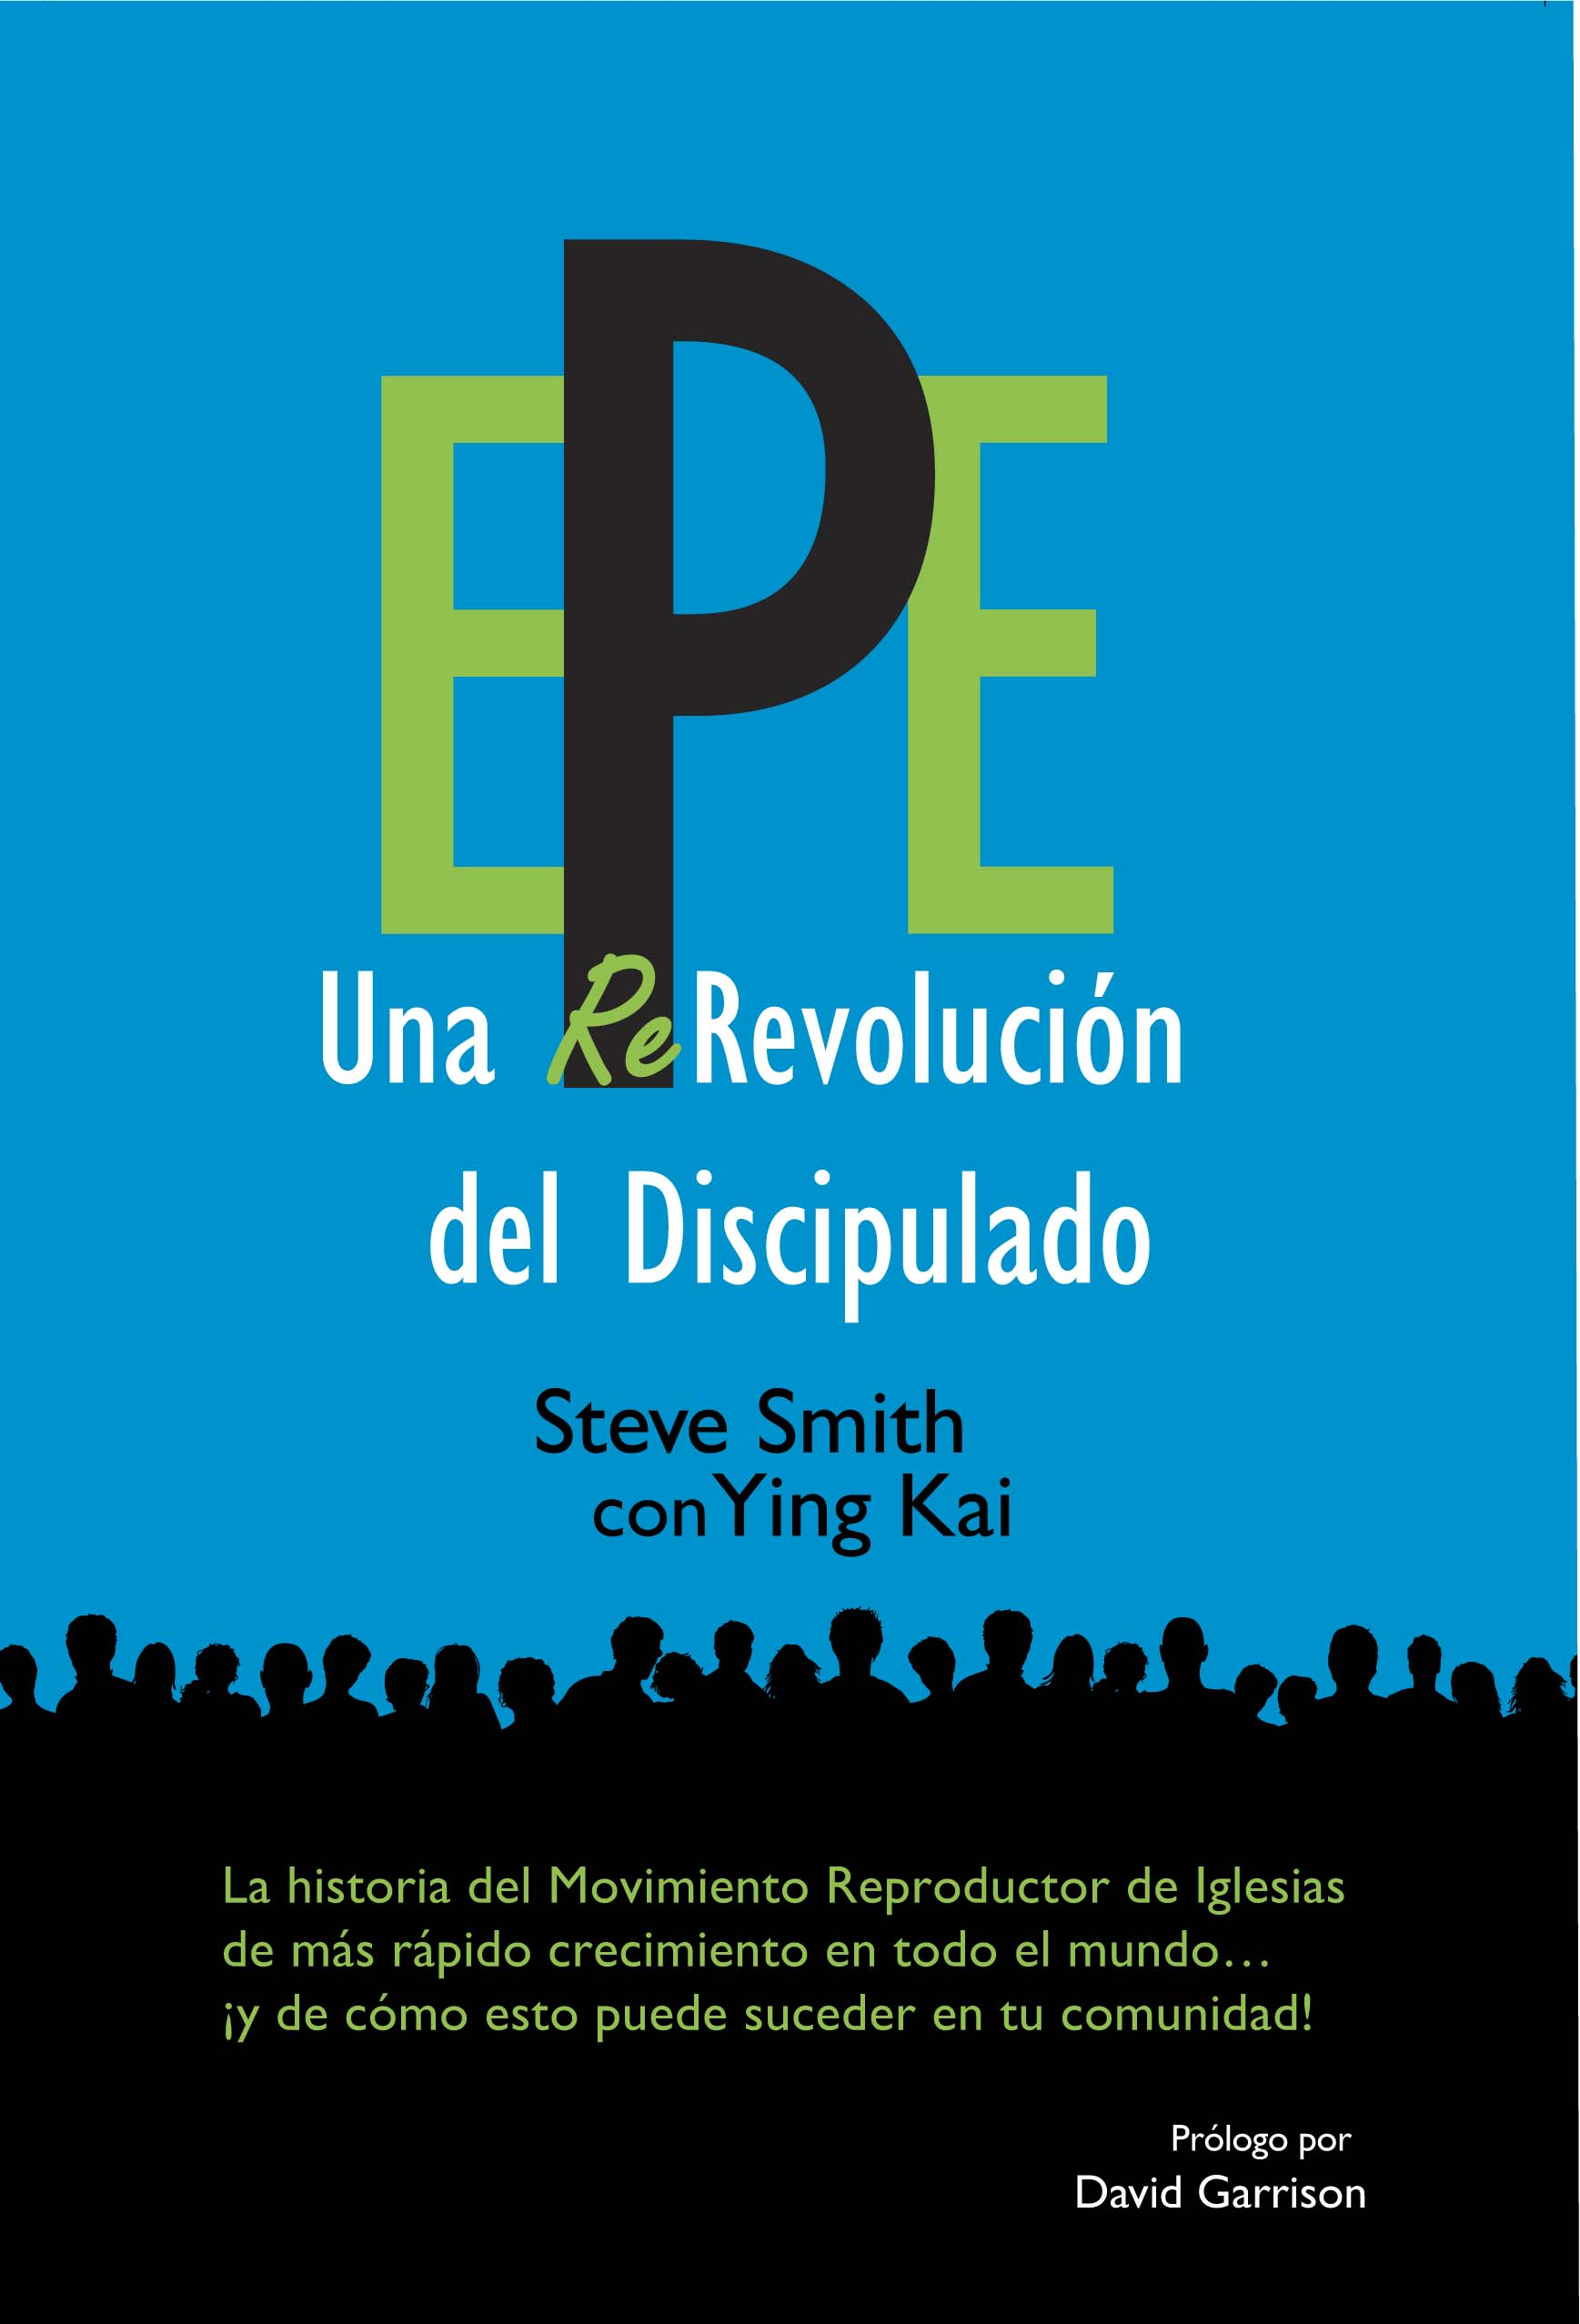 Cover of Spanish-language T4T book